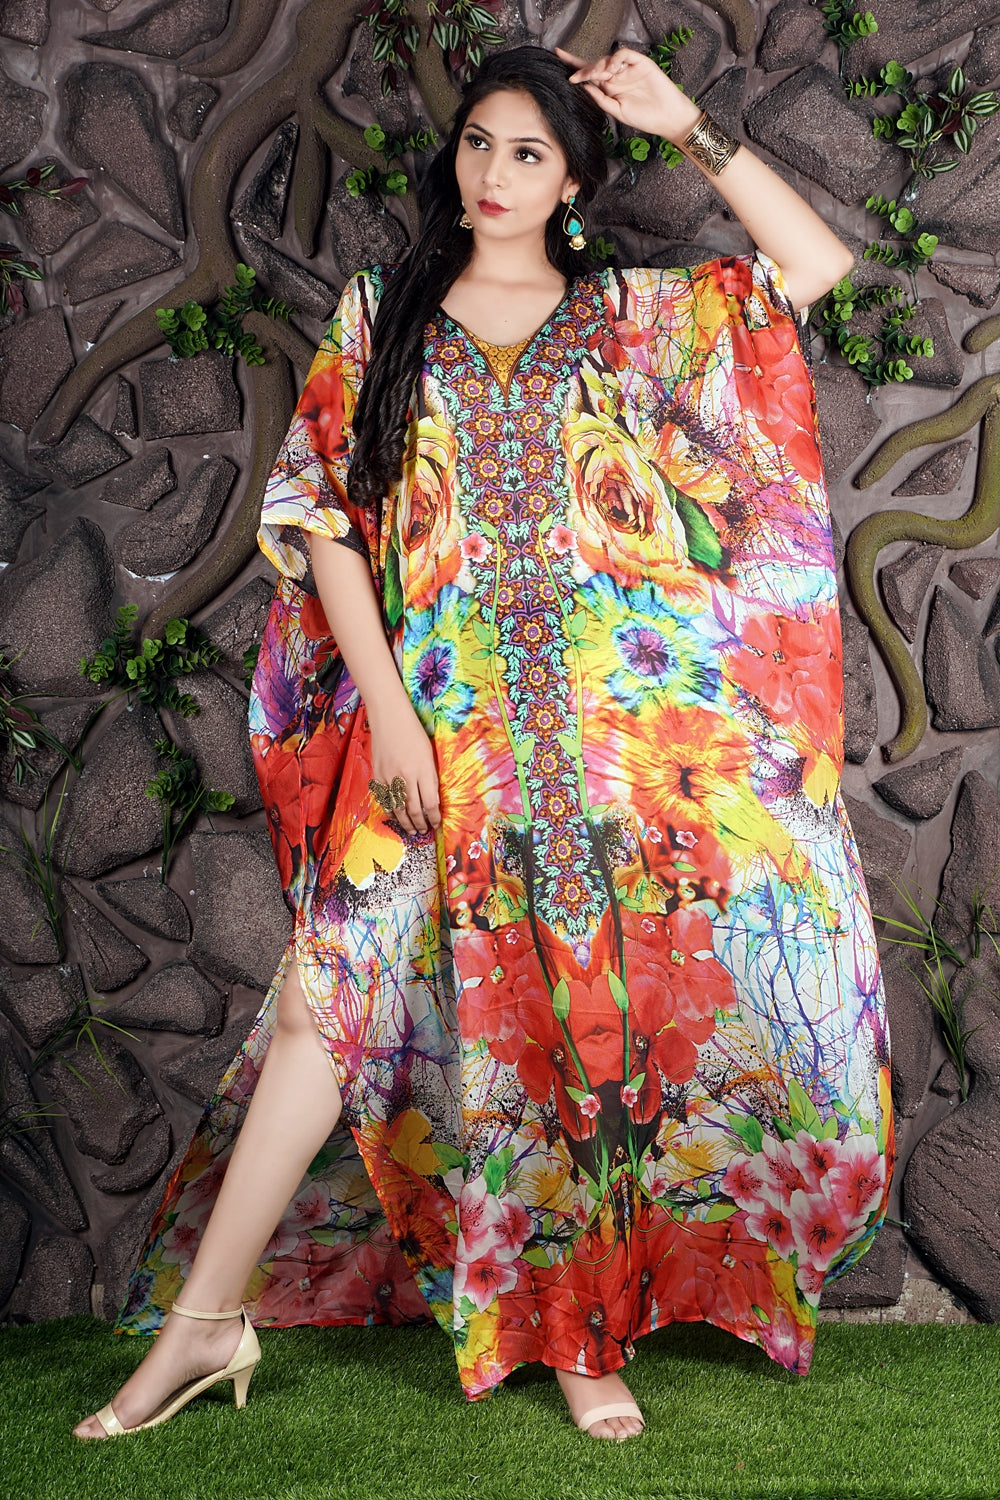 Imperial Art of Floral Print on long Silk Kaftan with Embroidery of Beads at the centre - Silk kaftan